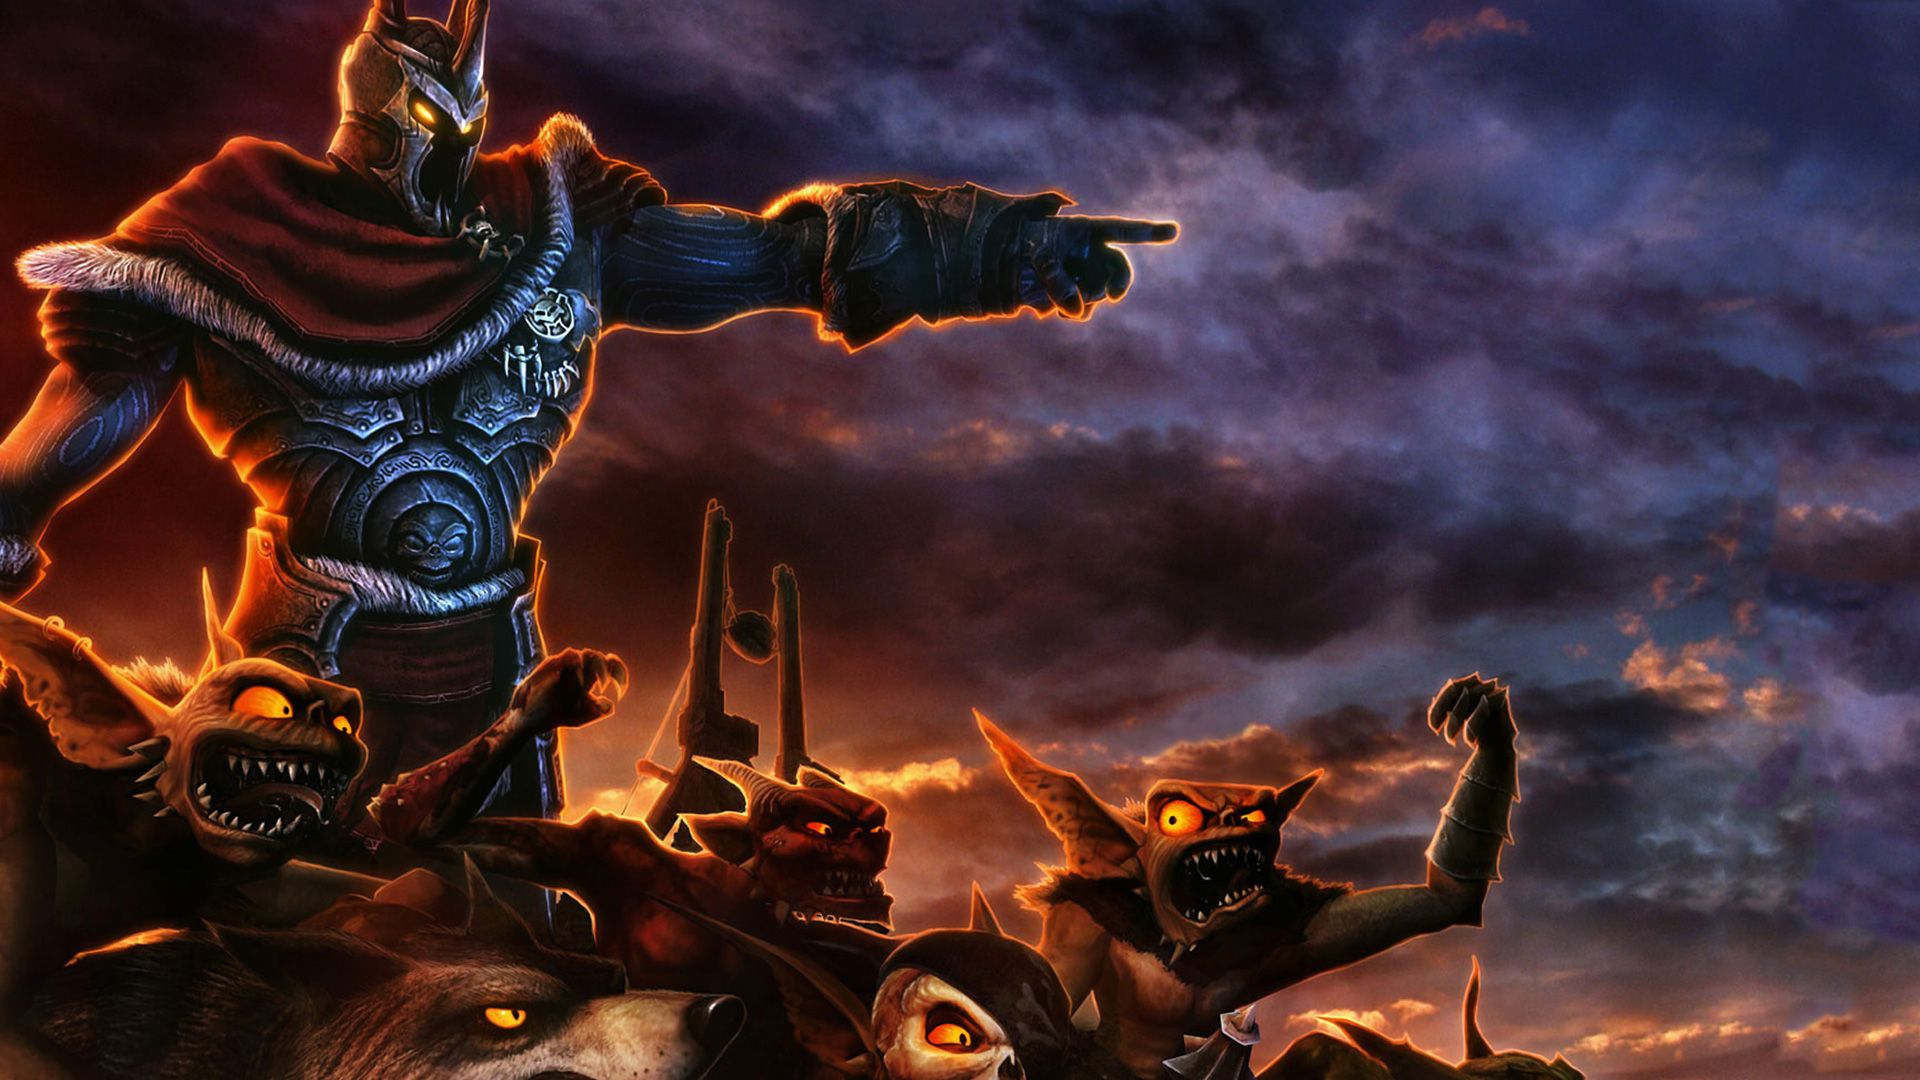 Overlord 2 Ps3 Digital Wallpaper Video Game Images Wallpaper